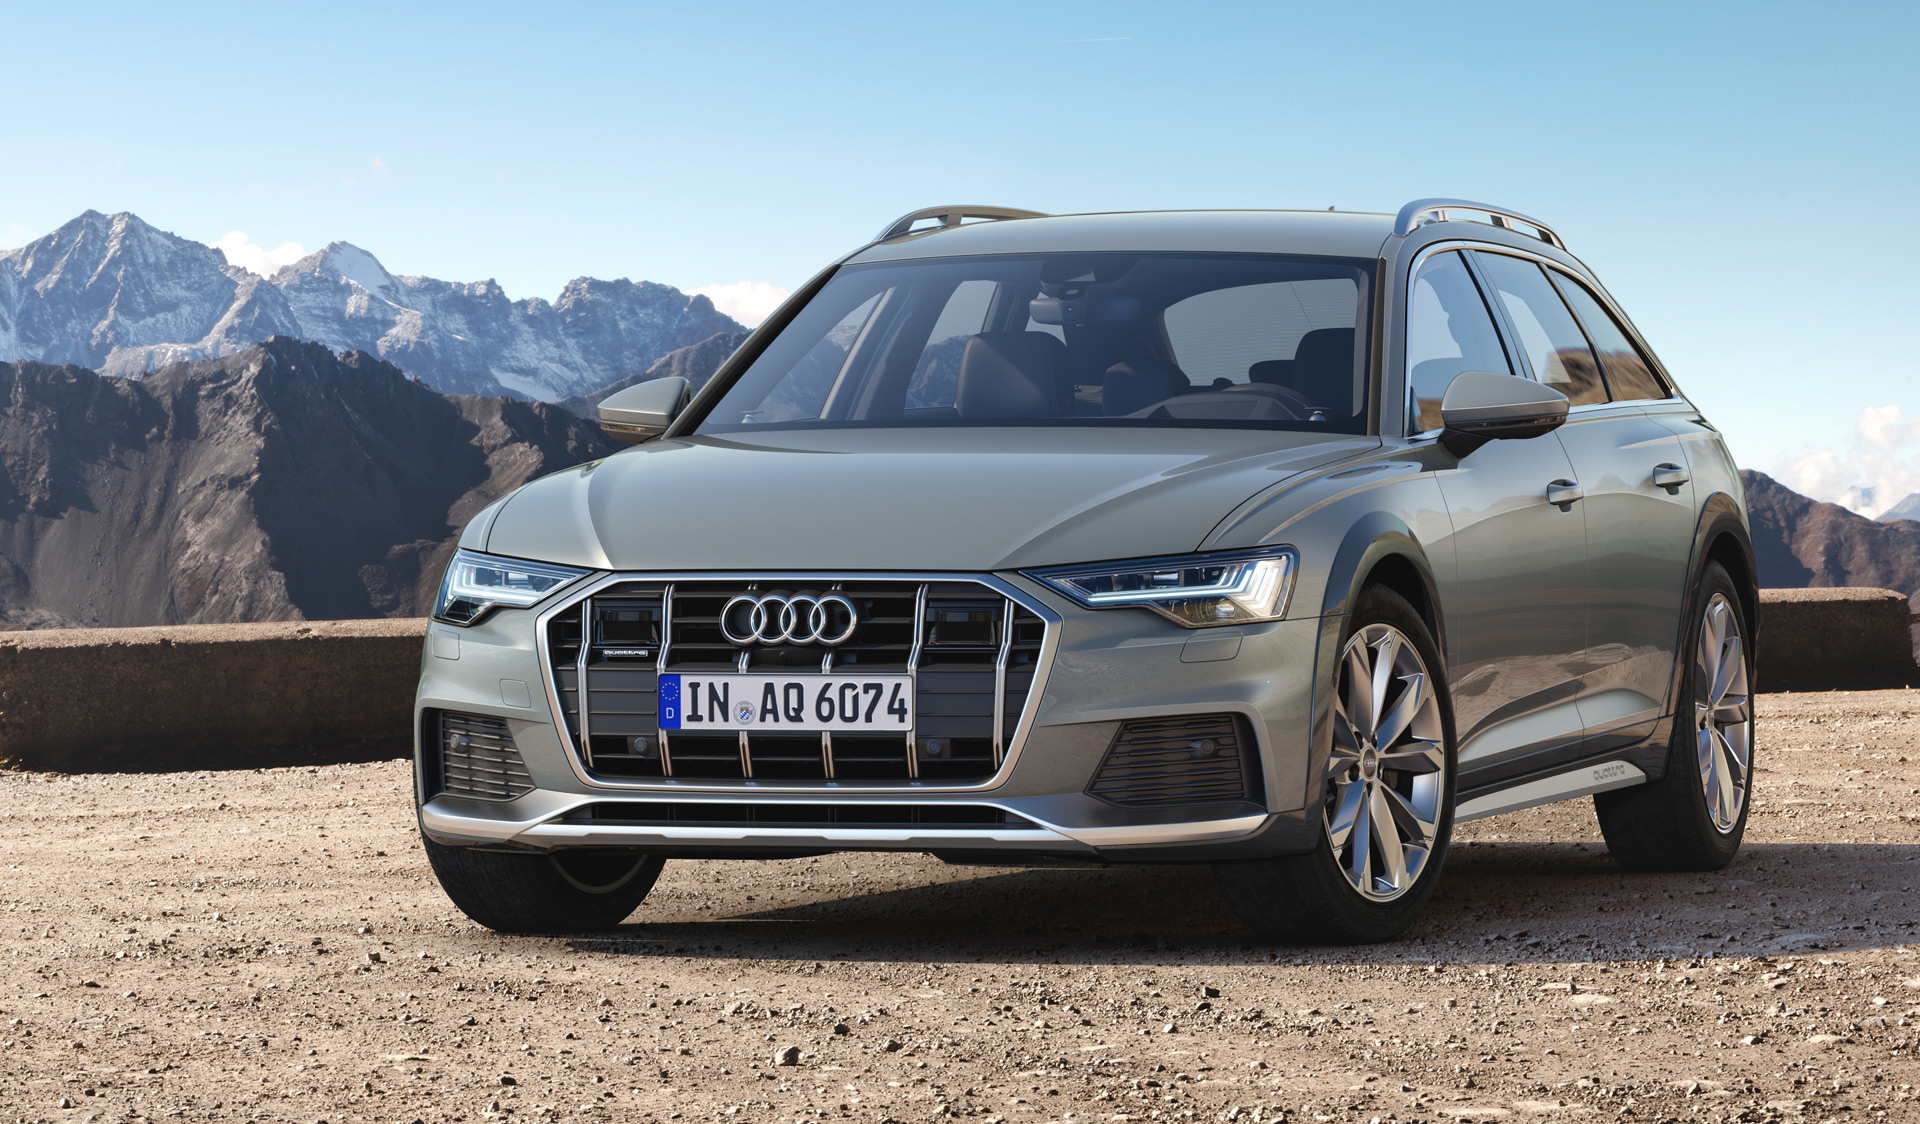 2020 audi a6 allroad reaches canada is the us next. Black Bedroom Furniture Sets. Home Design Ideas